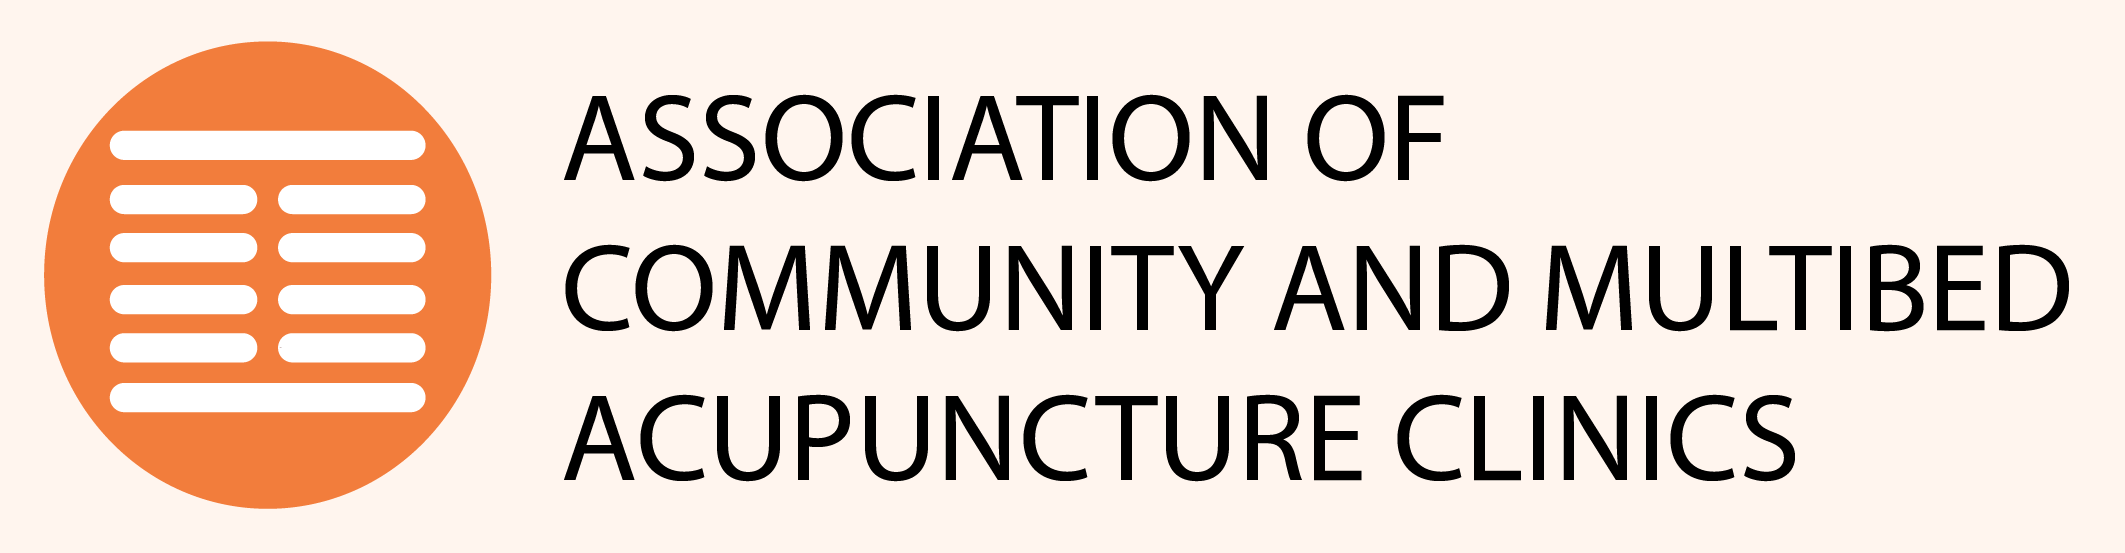 Acupuncture for the community at affordable prices